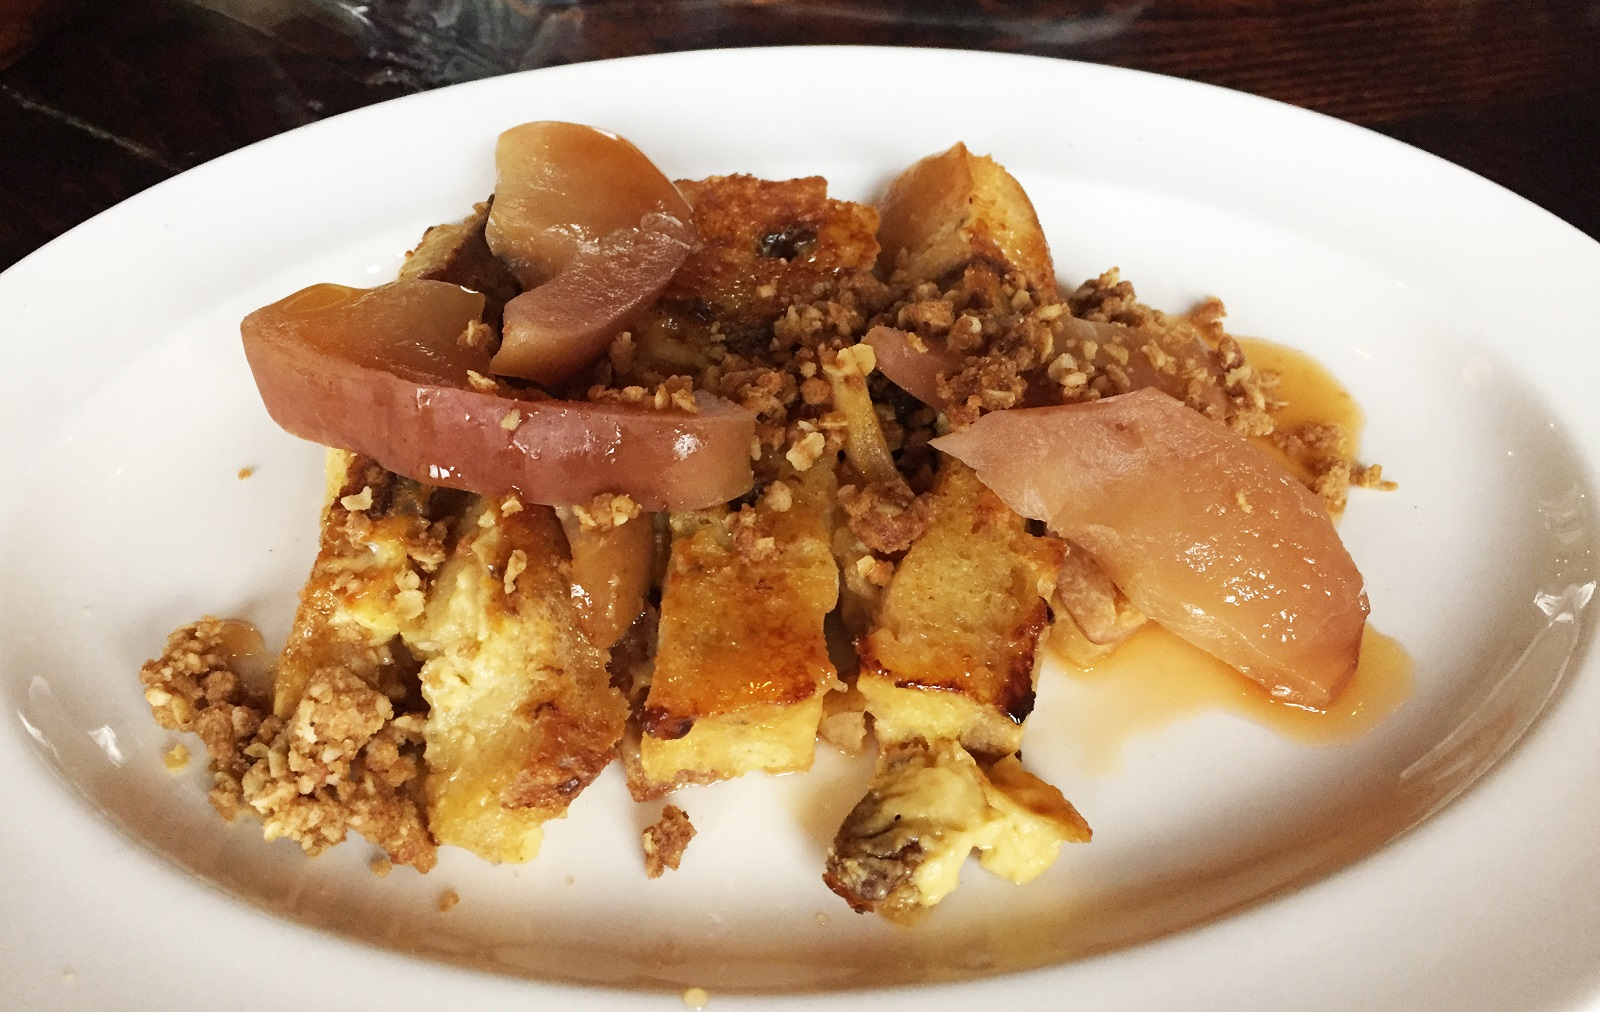 When other fruit is not available, Gedra uses apples and pears, as in this brunch special. (Caitlin Hartney/Special to The News)